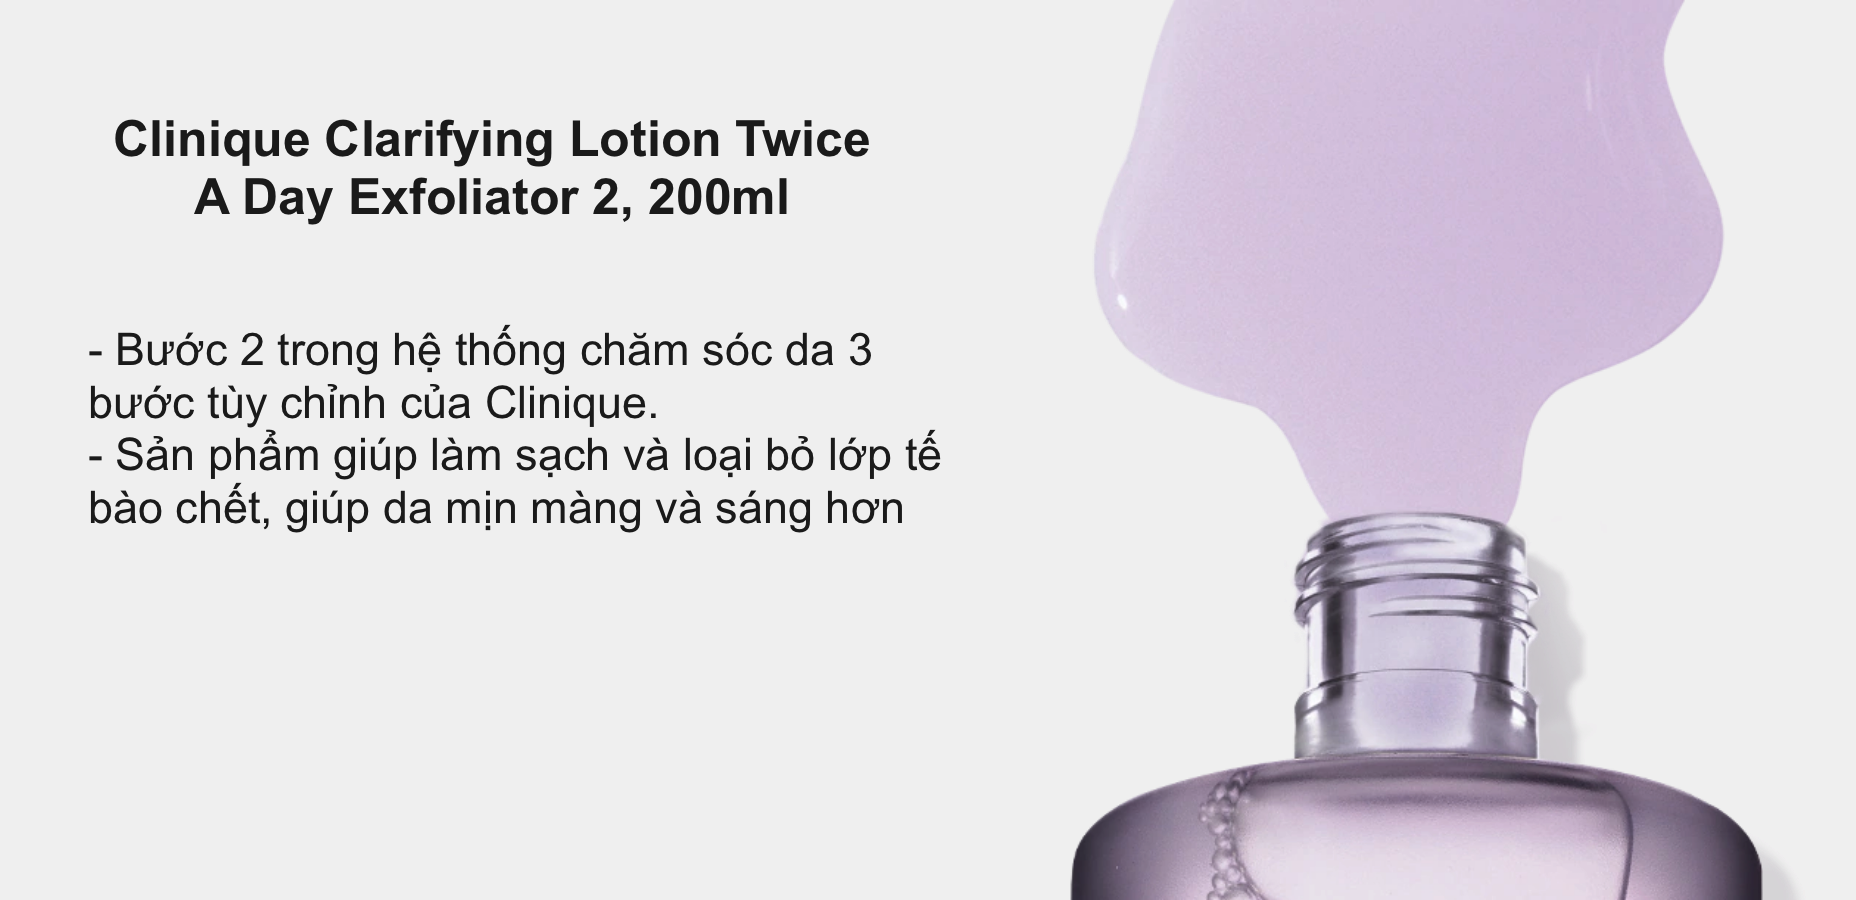 Clinique Clarifying Lotion Twice A Day Exfoliator 2, 200ml